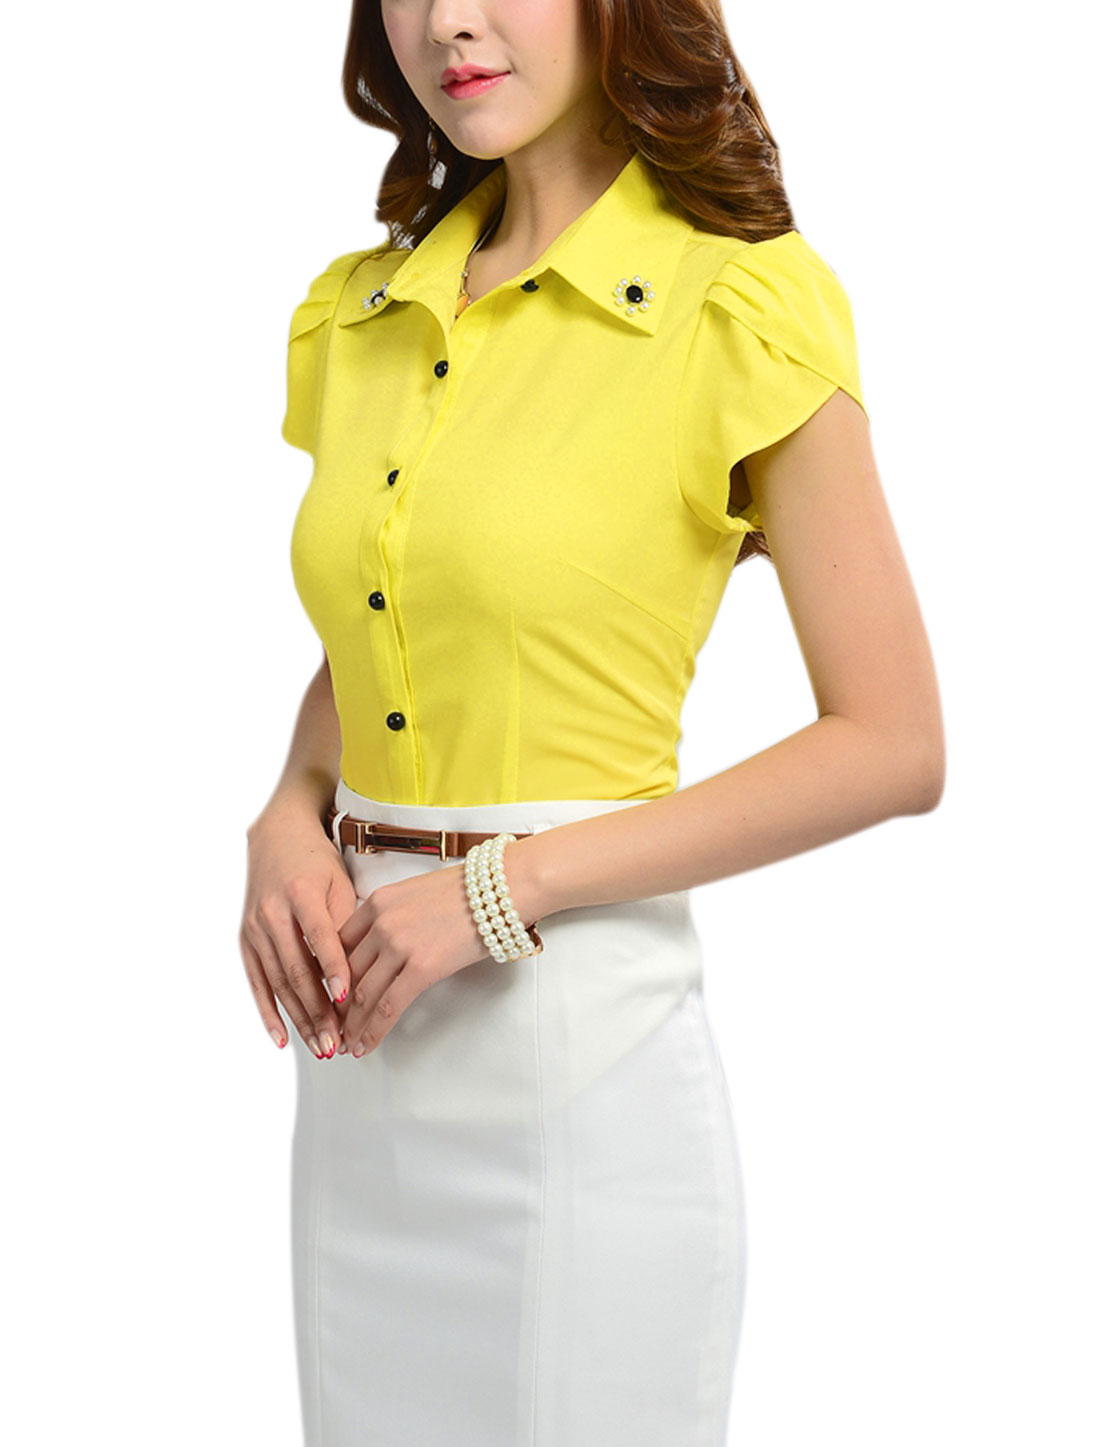 Lady Button Front Fake Pearls Decor Shirt w Self Tie Strap Yellow M